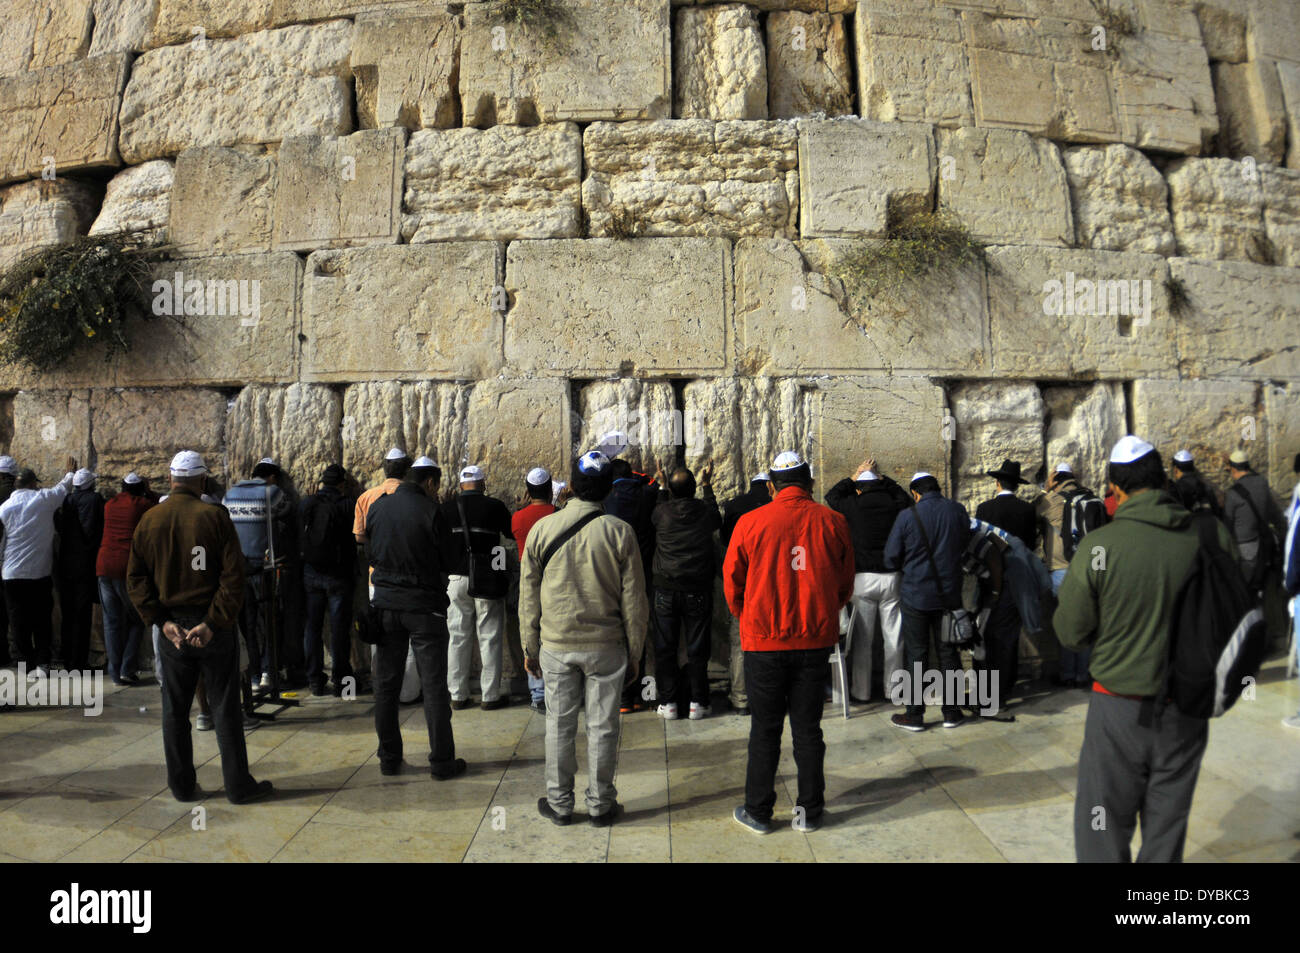 Devotees and worshipers wait to touch the Wailing wall, Old city of Jerusalem, Israel - Stock Image